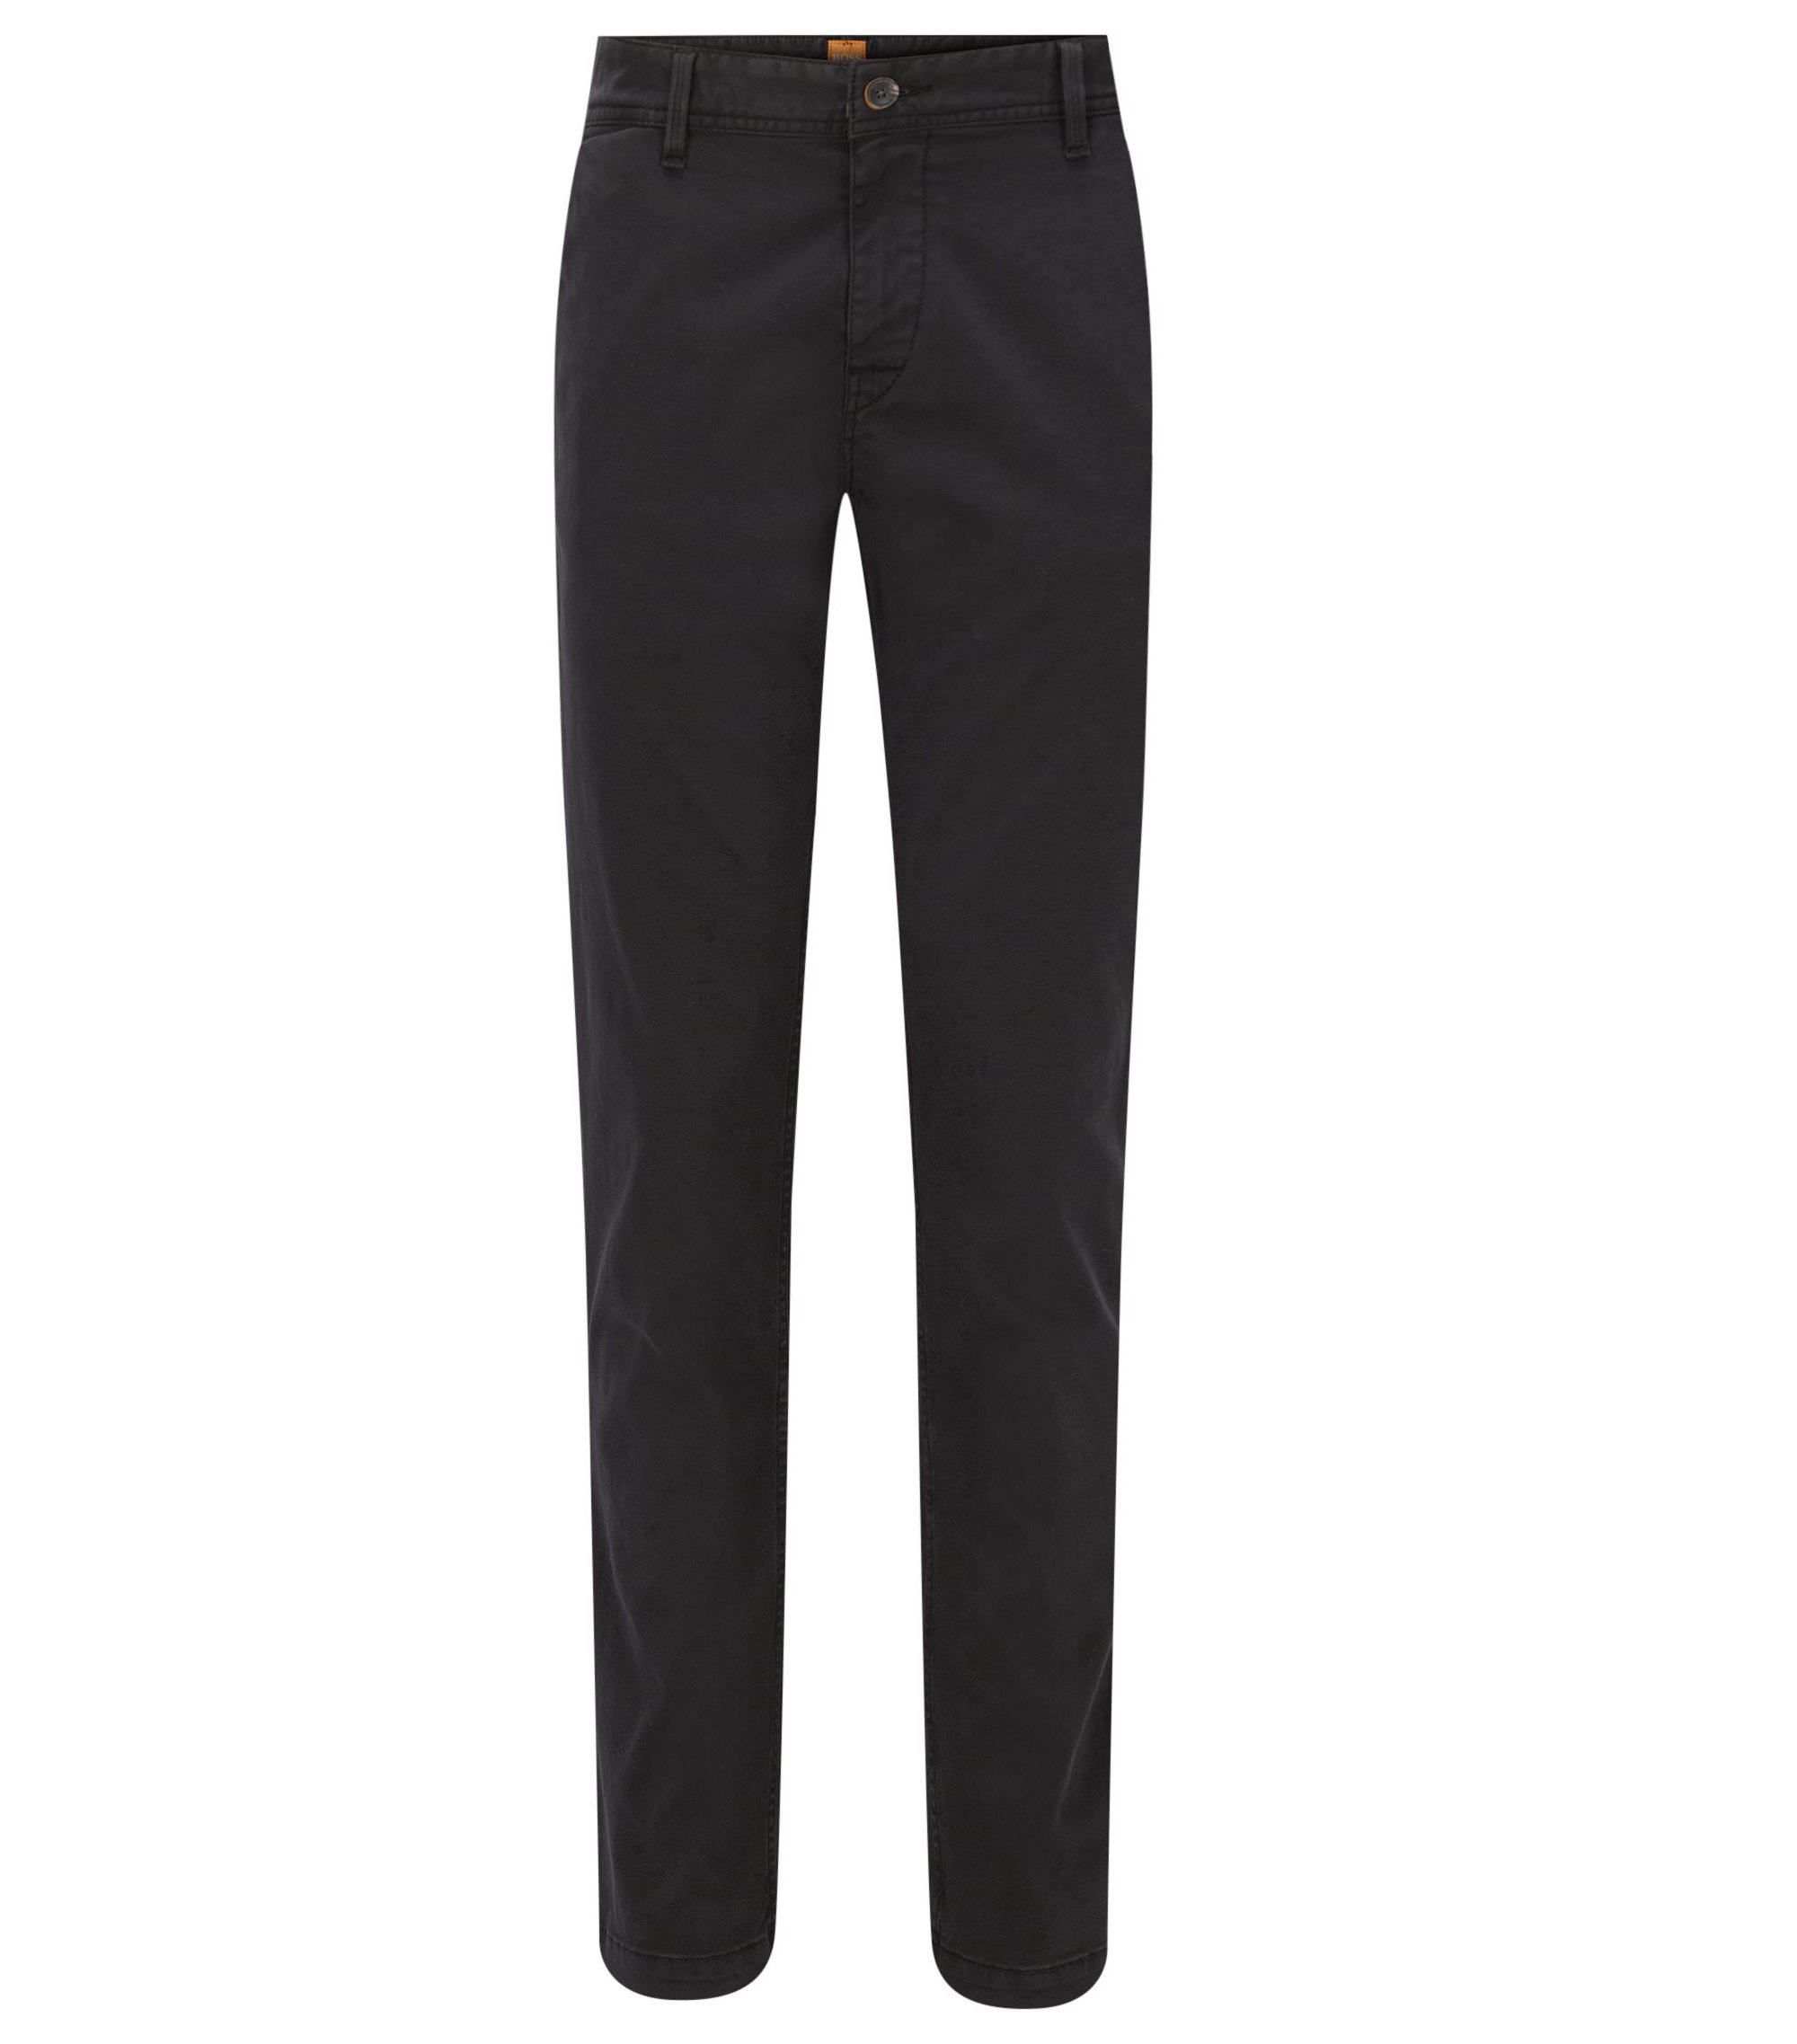 Stretch Cotton Chino Pants, Slim Fit | Schino Slim D, Black